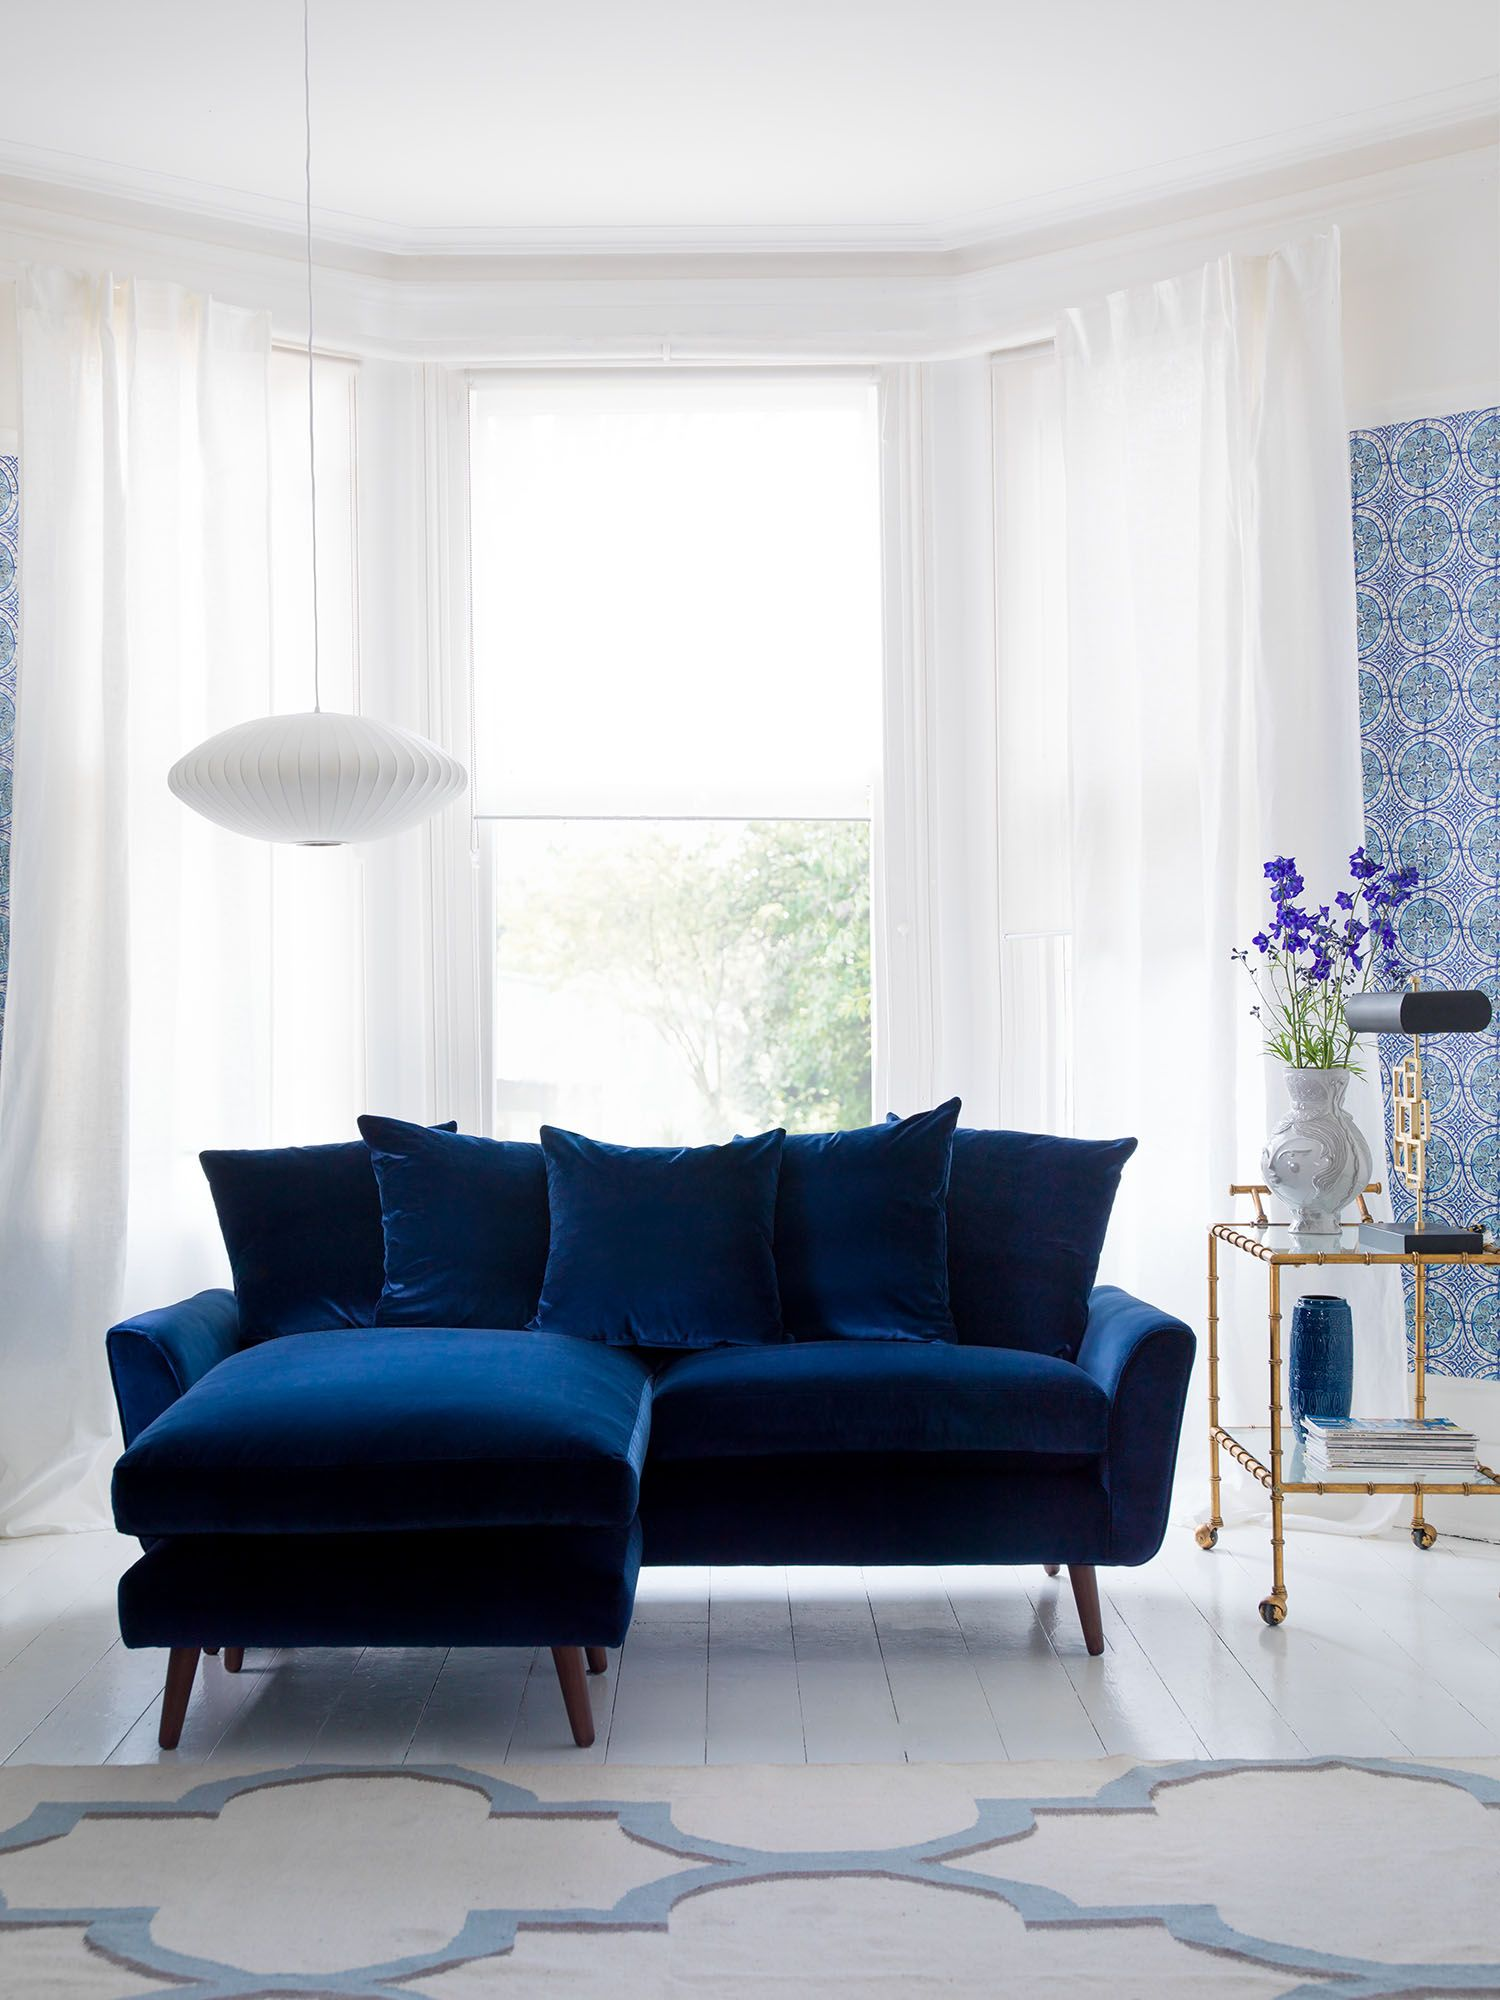 Astonishing Bardolph Armchair Homes Blue Velvet Sofa Velvet Corner Onthecornerstone Fun Painted Chair Ideas Images Onthecornerstoneorg